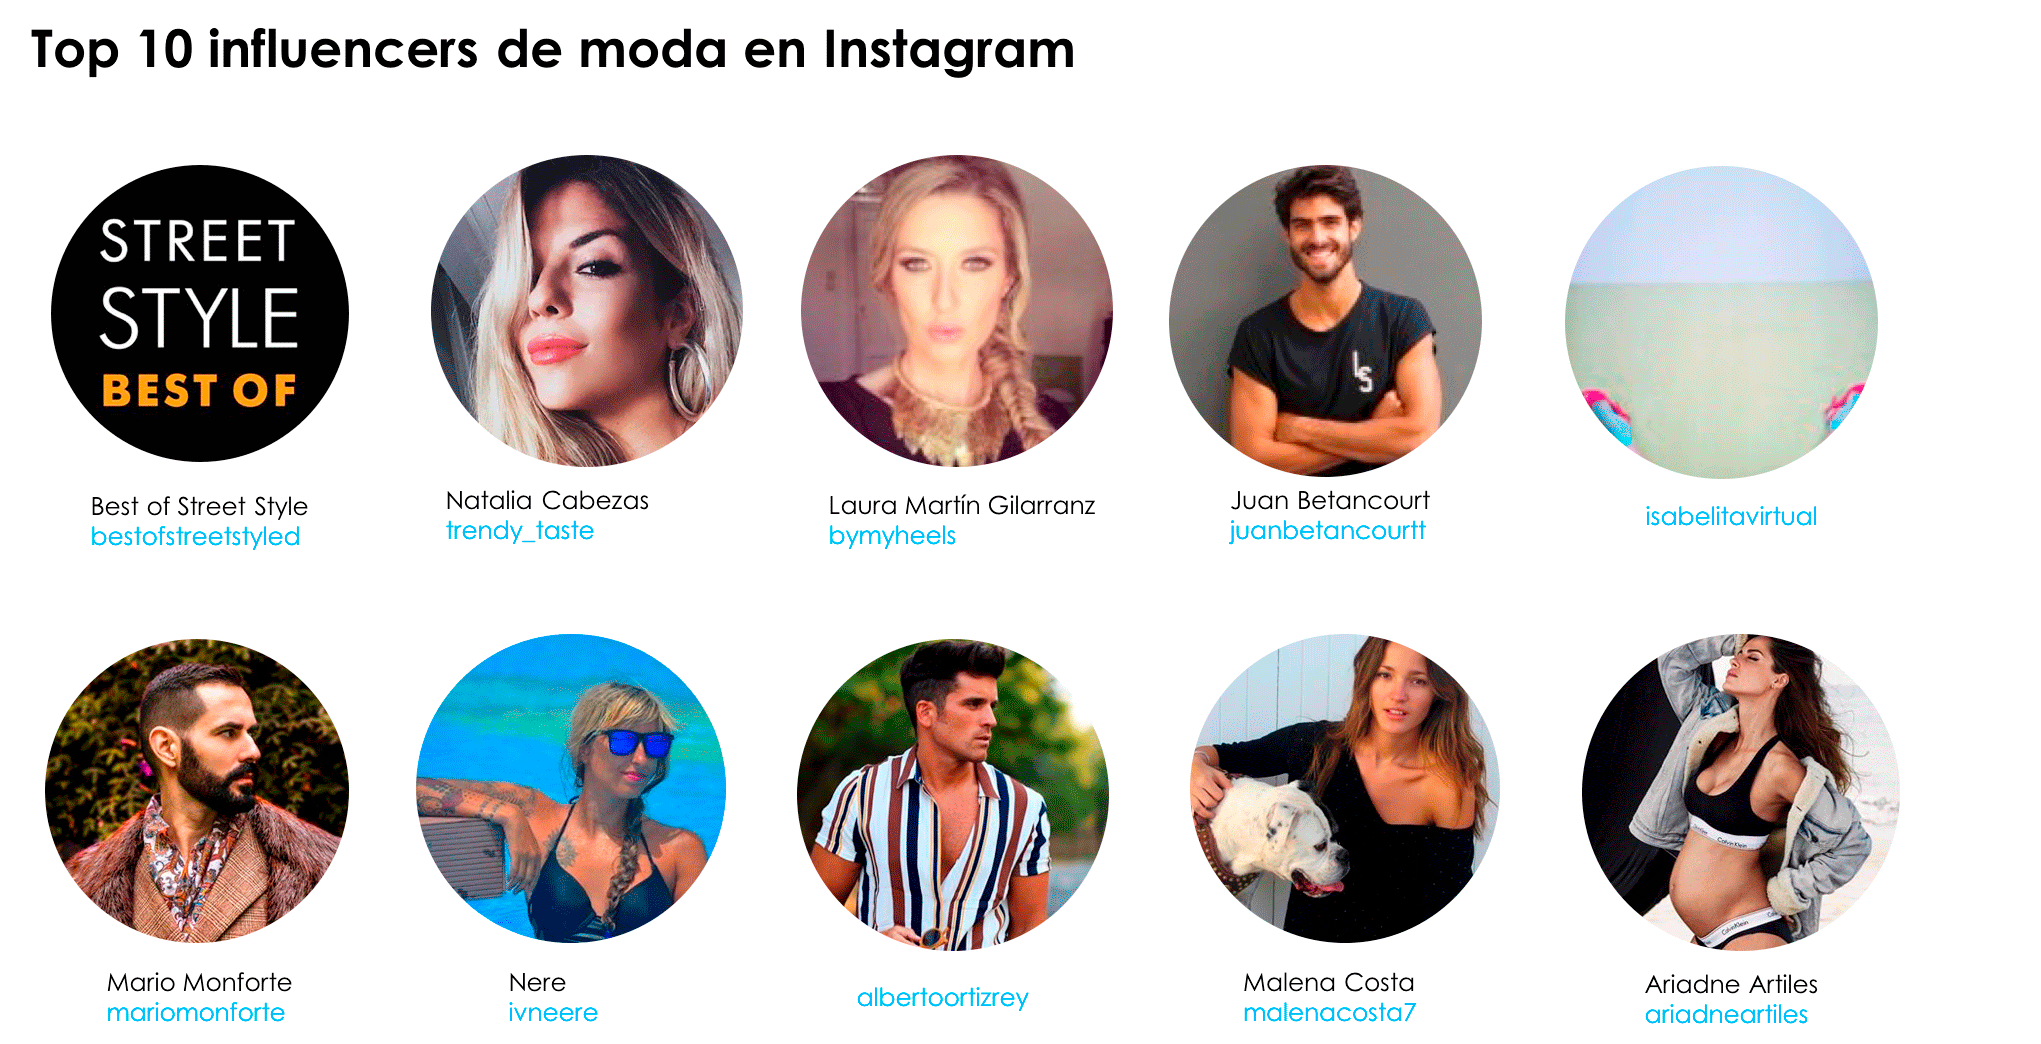 Top 10 influencers de moda en Instagram